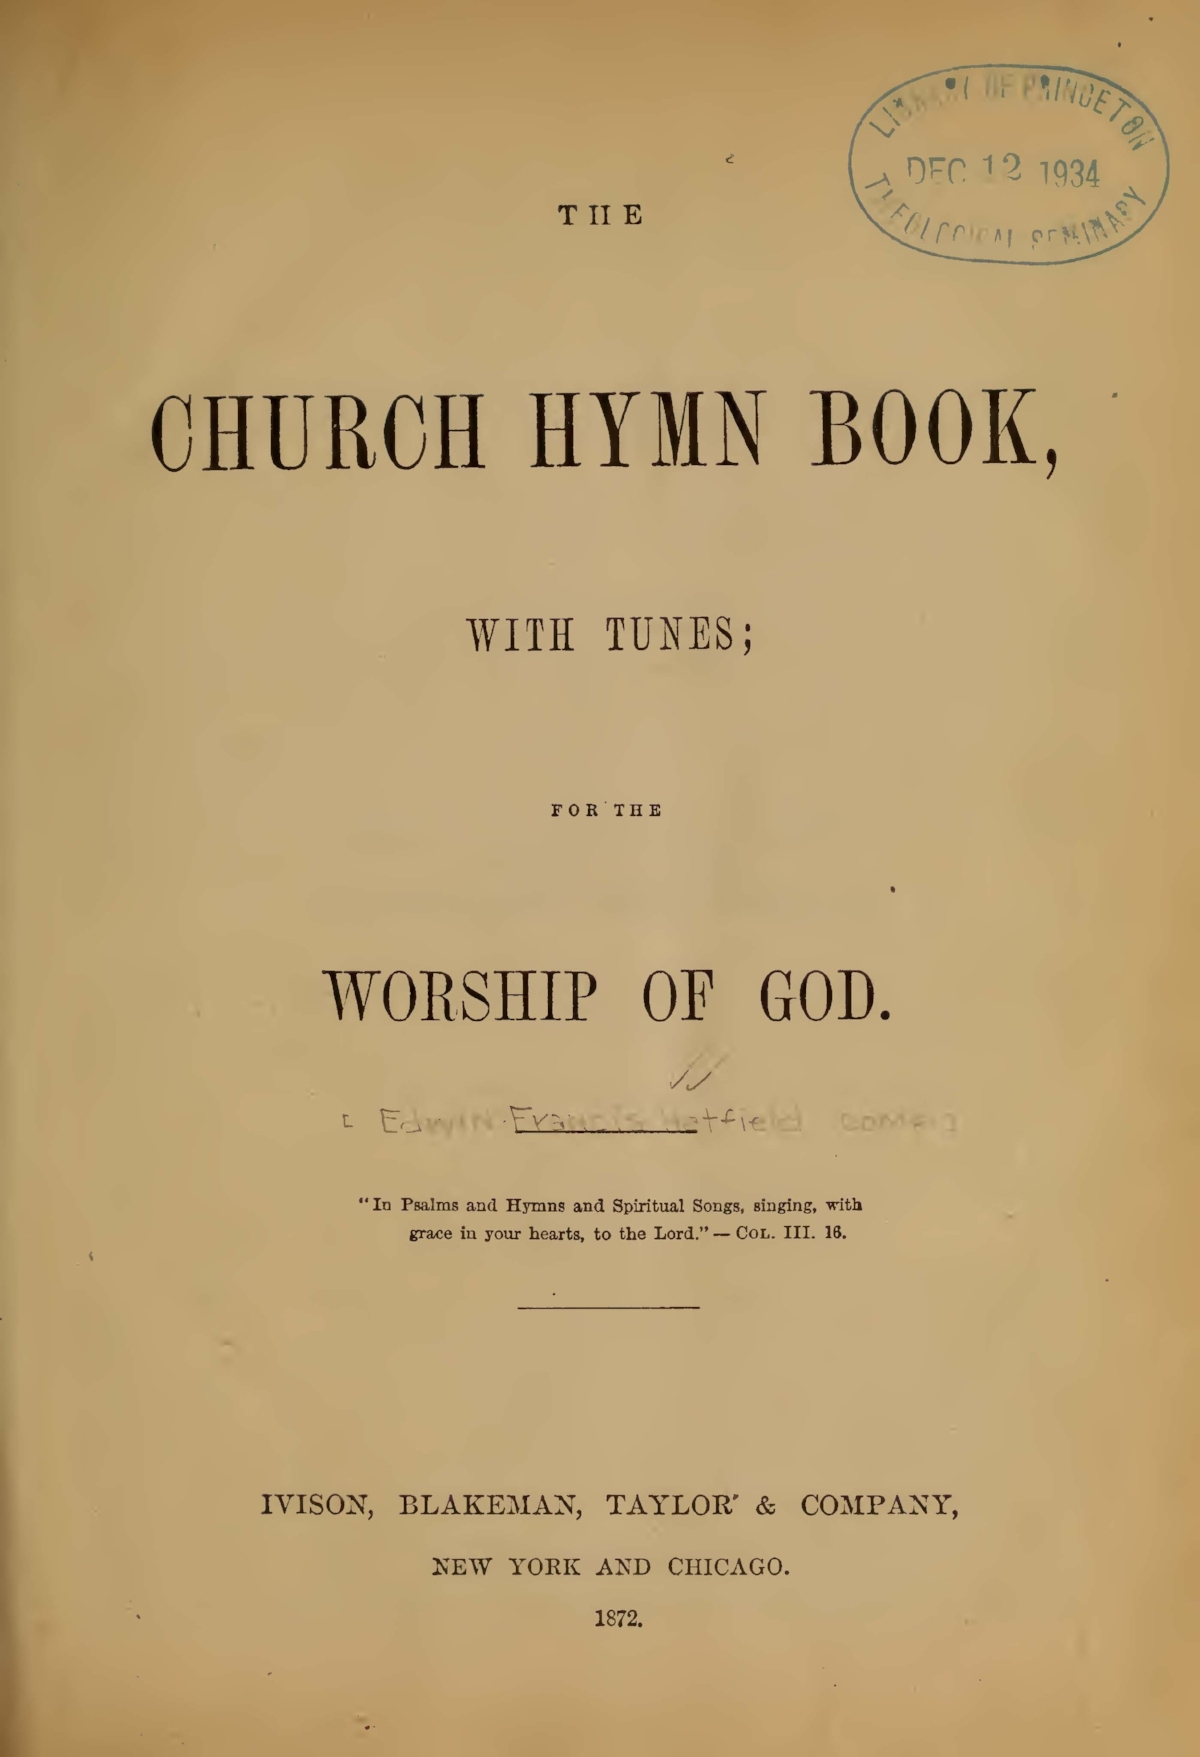 Hatfield, Edwin Francis, The Church Hymn Book With Tunes Title Page.jpg